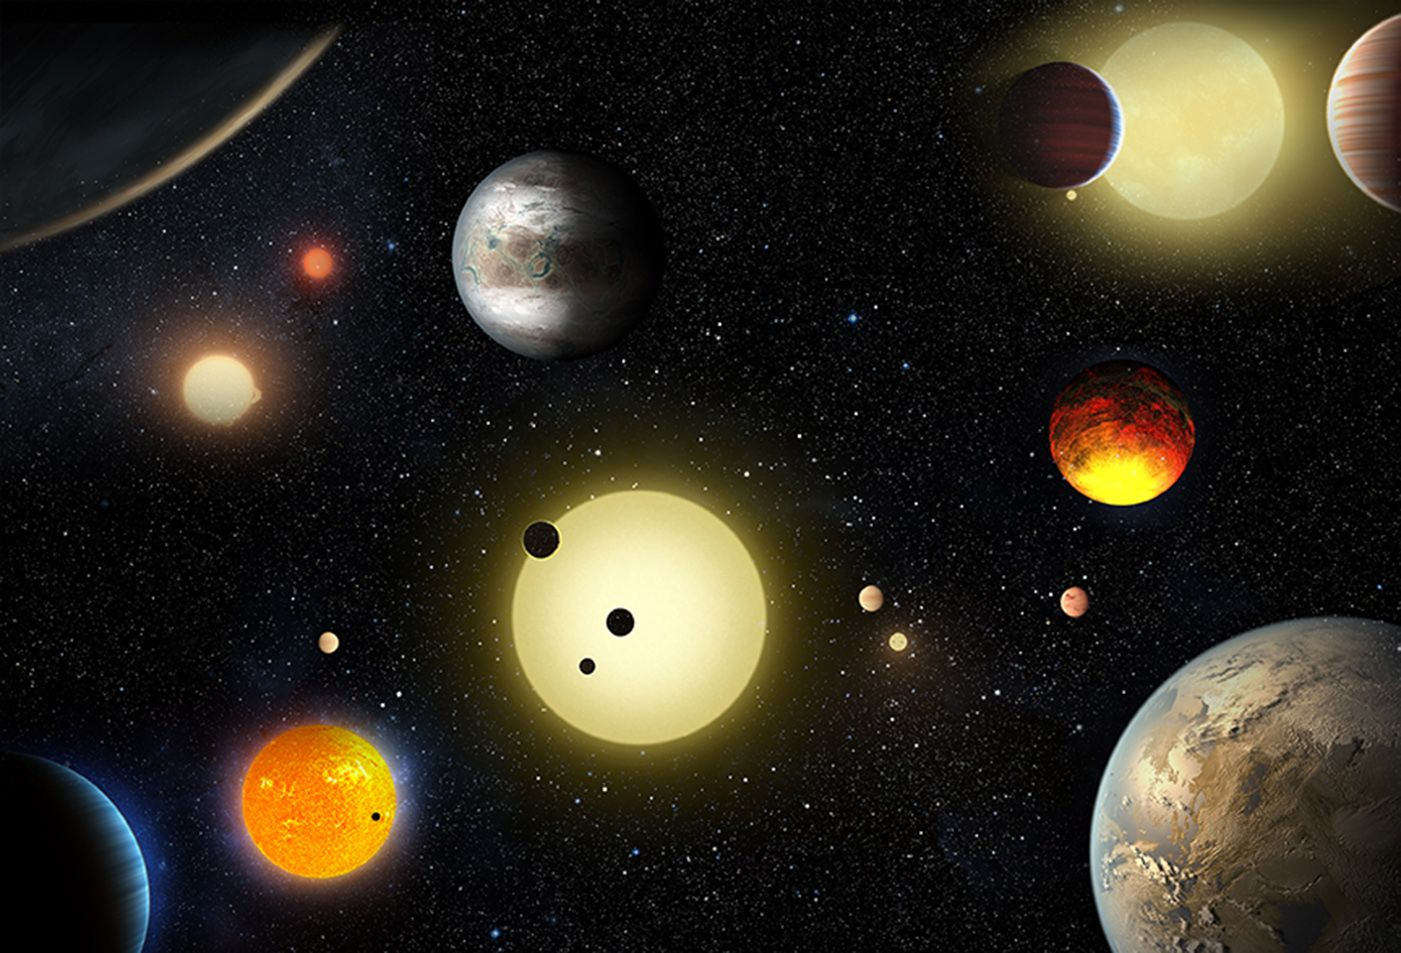 Kepler Discovered a Thousand More Exoplanets